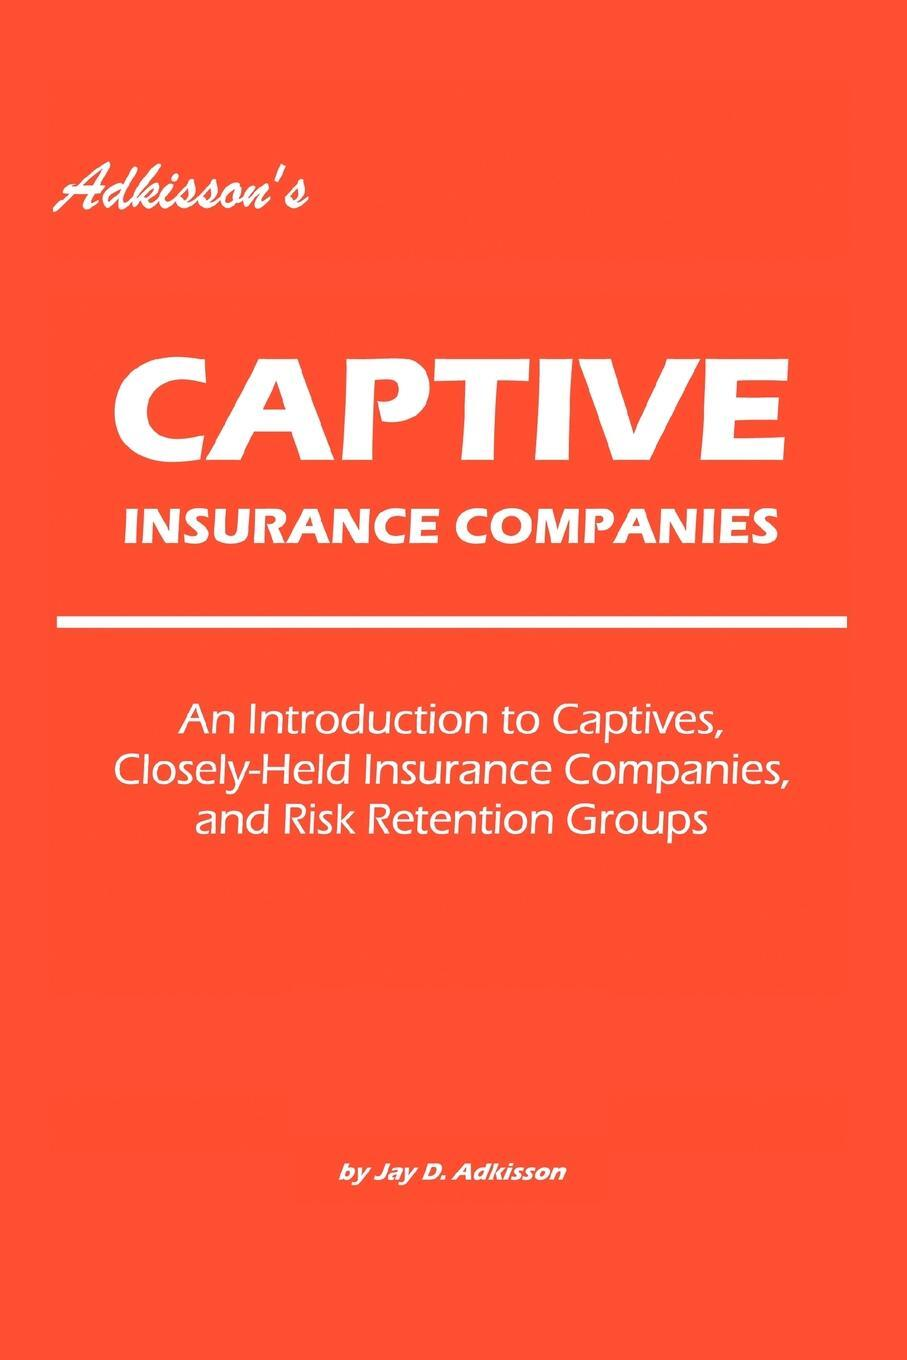 Adkisson`s Captive Insurance Companies. An Introduction to Captives, Closely-Held Insurance Companies, and Risk Retention Groups